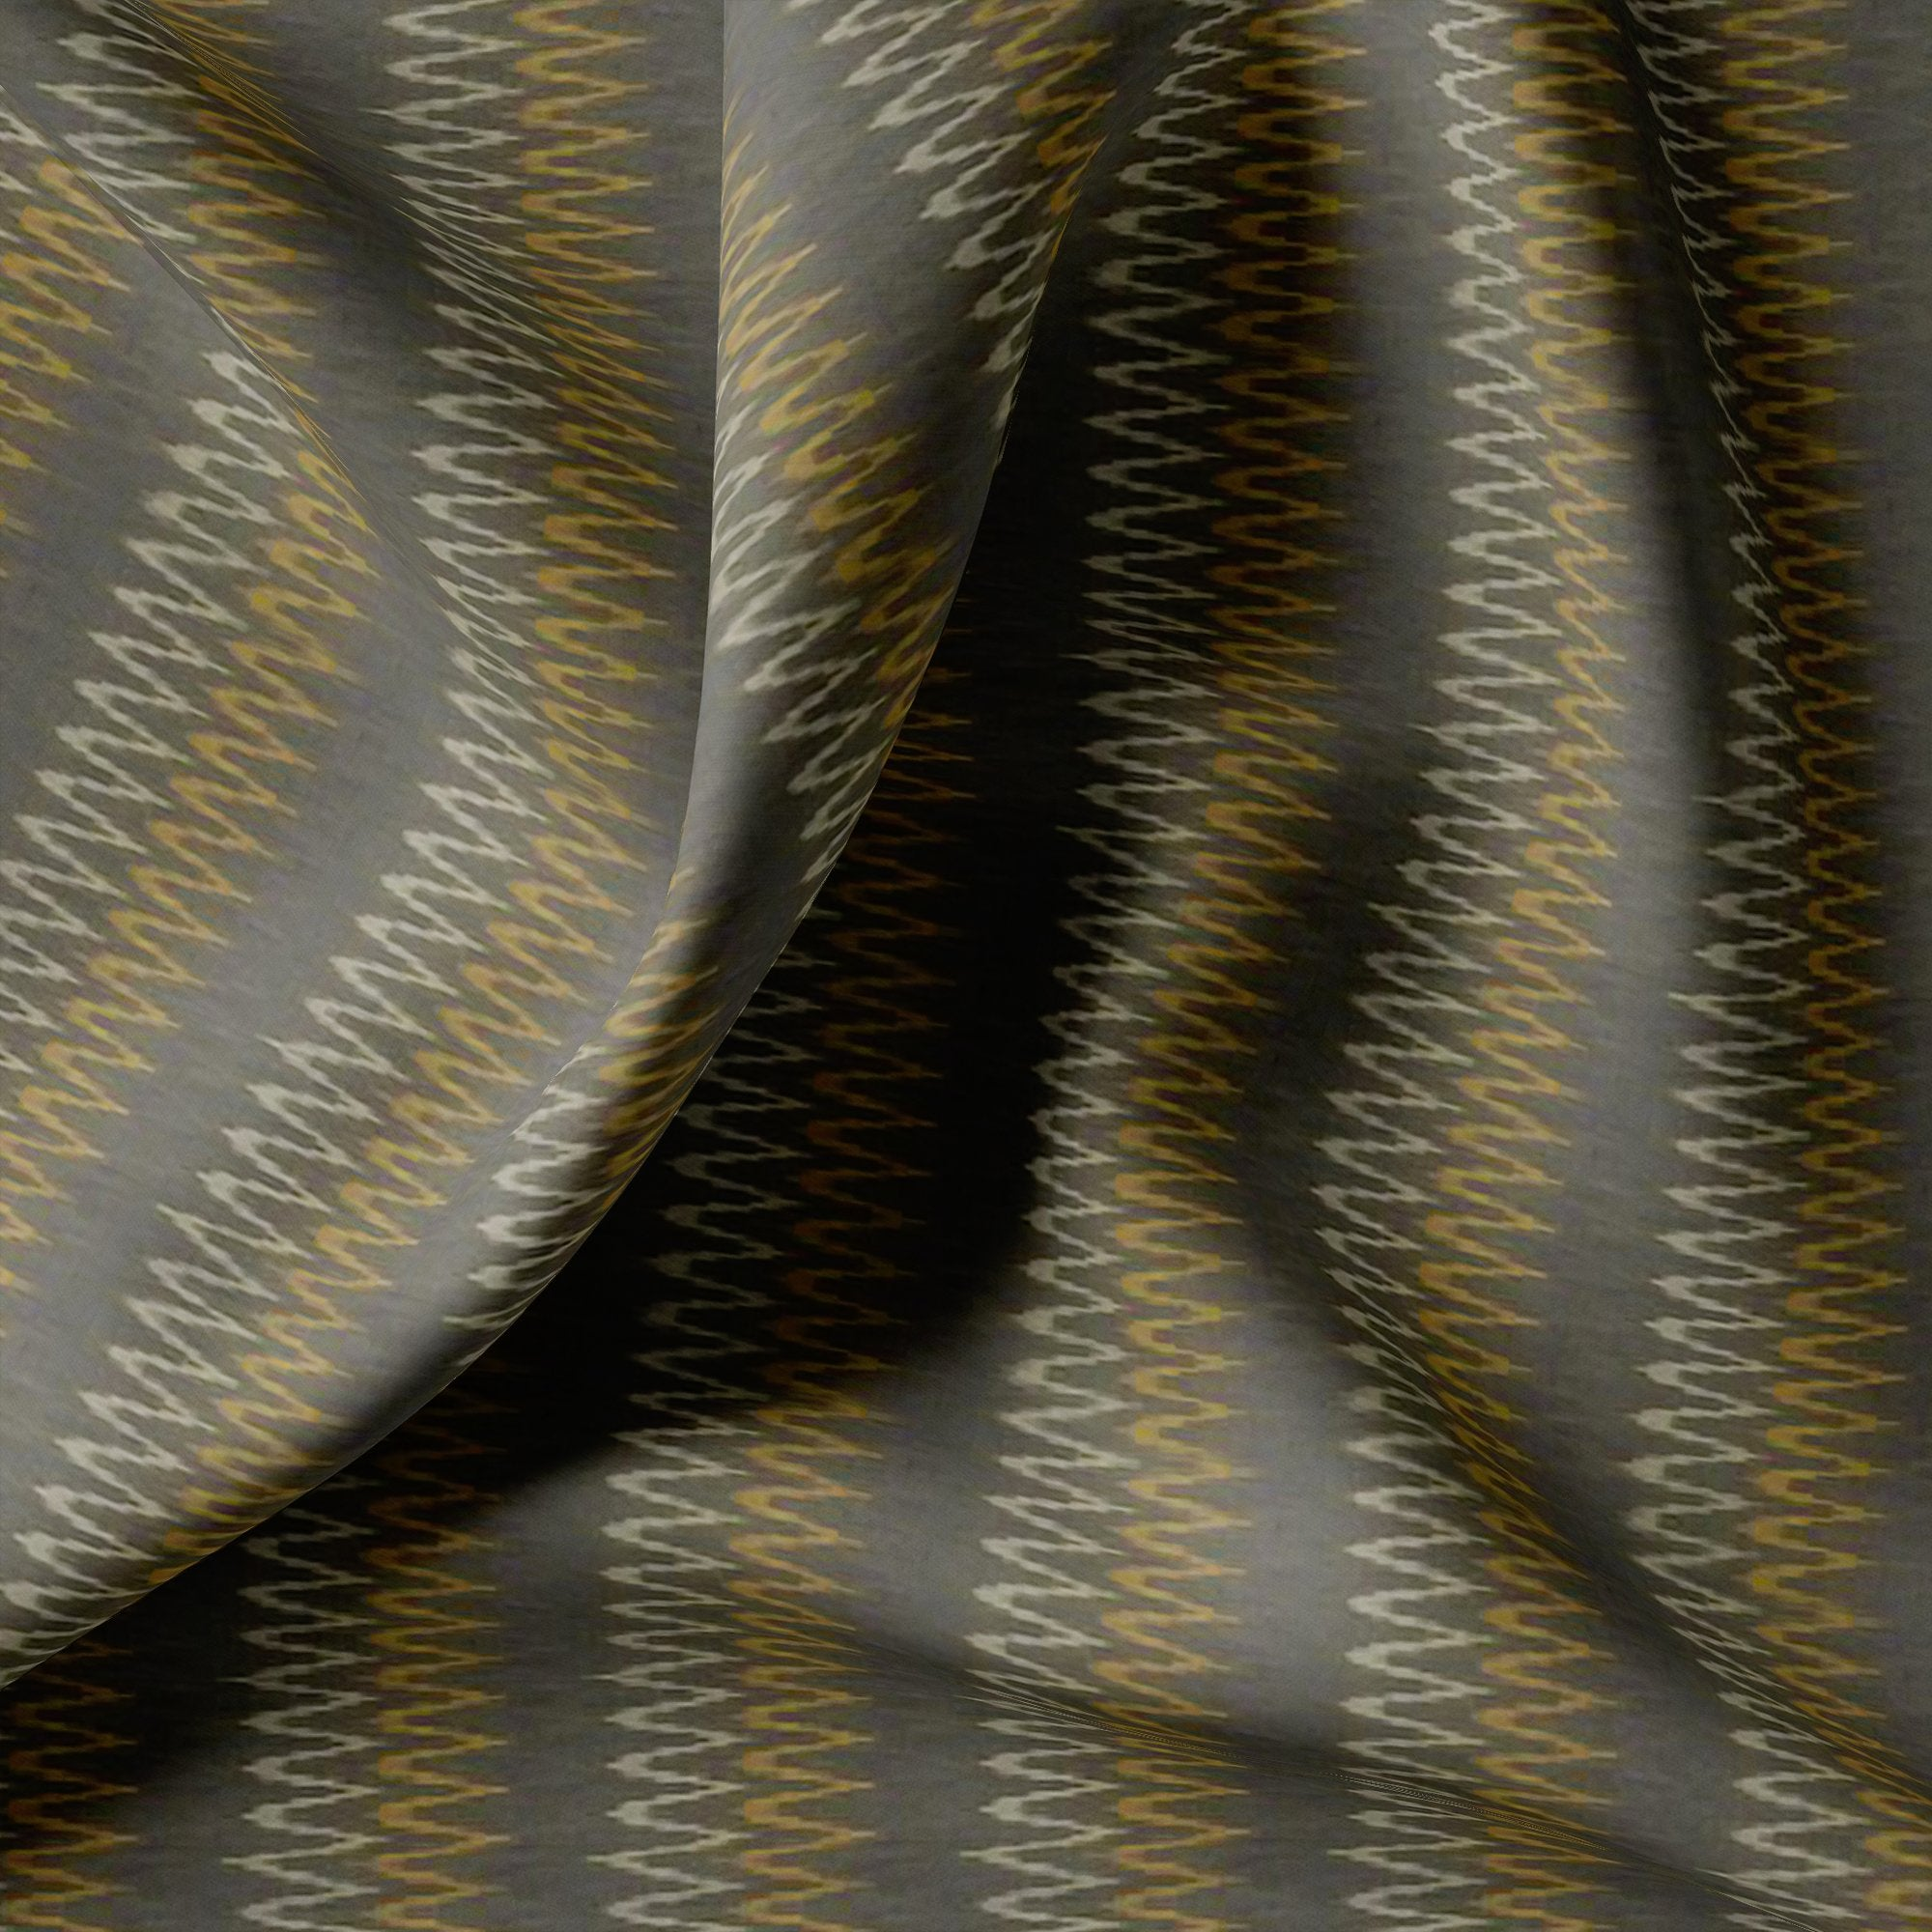 Cheveron Design Digital Printed Fabric - FAB VOGUE Studio. Shop Fabric @ www.fabvoguestudio.com